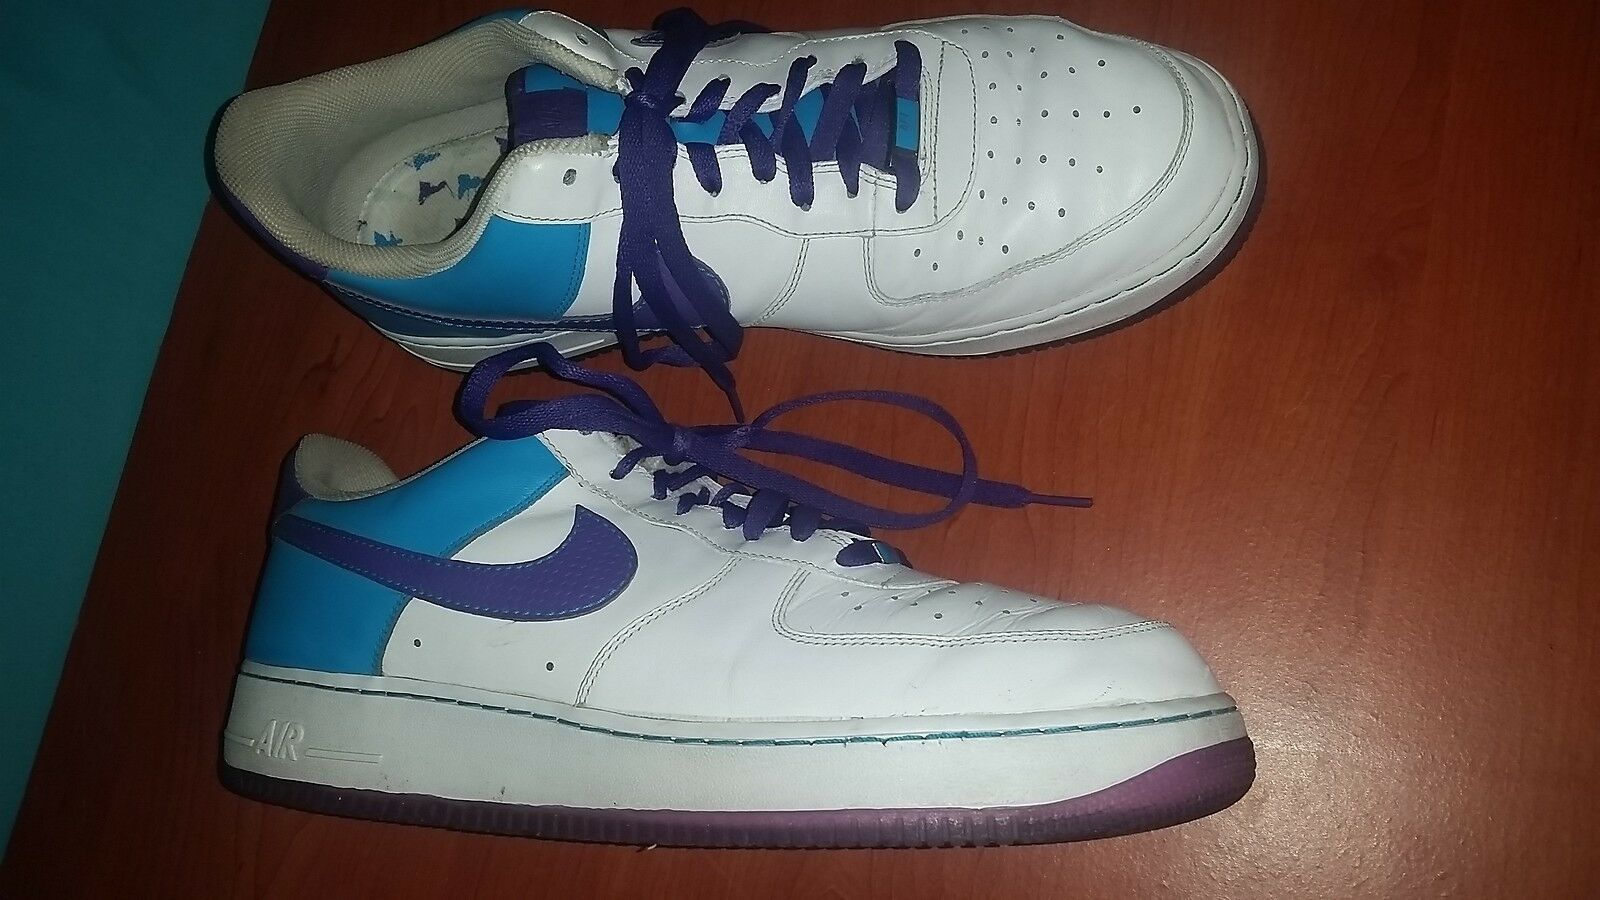 Nike Air Force 1 315122 Grape/White/Blue Men's Shoes '07 size 14